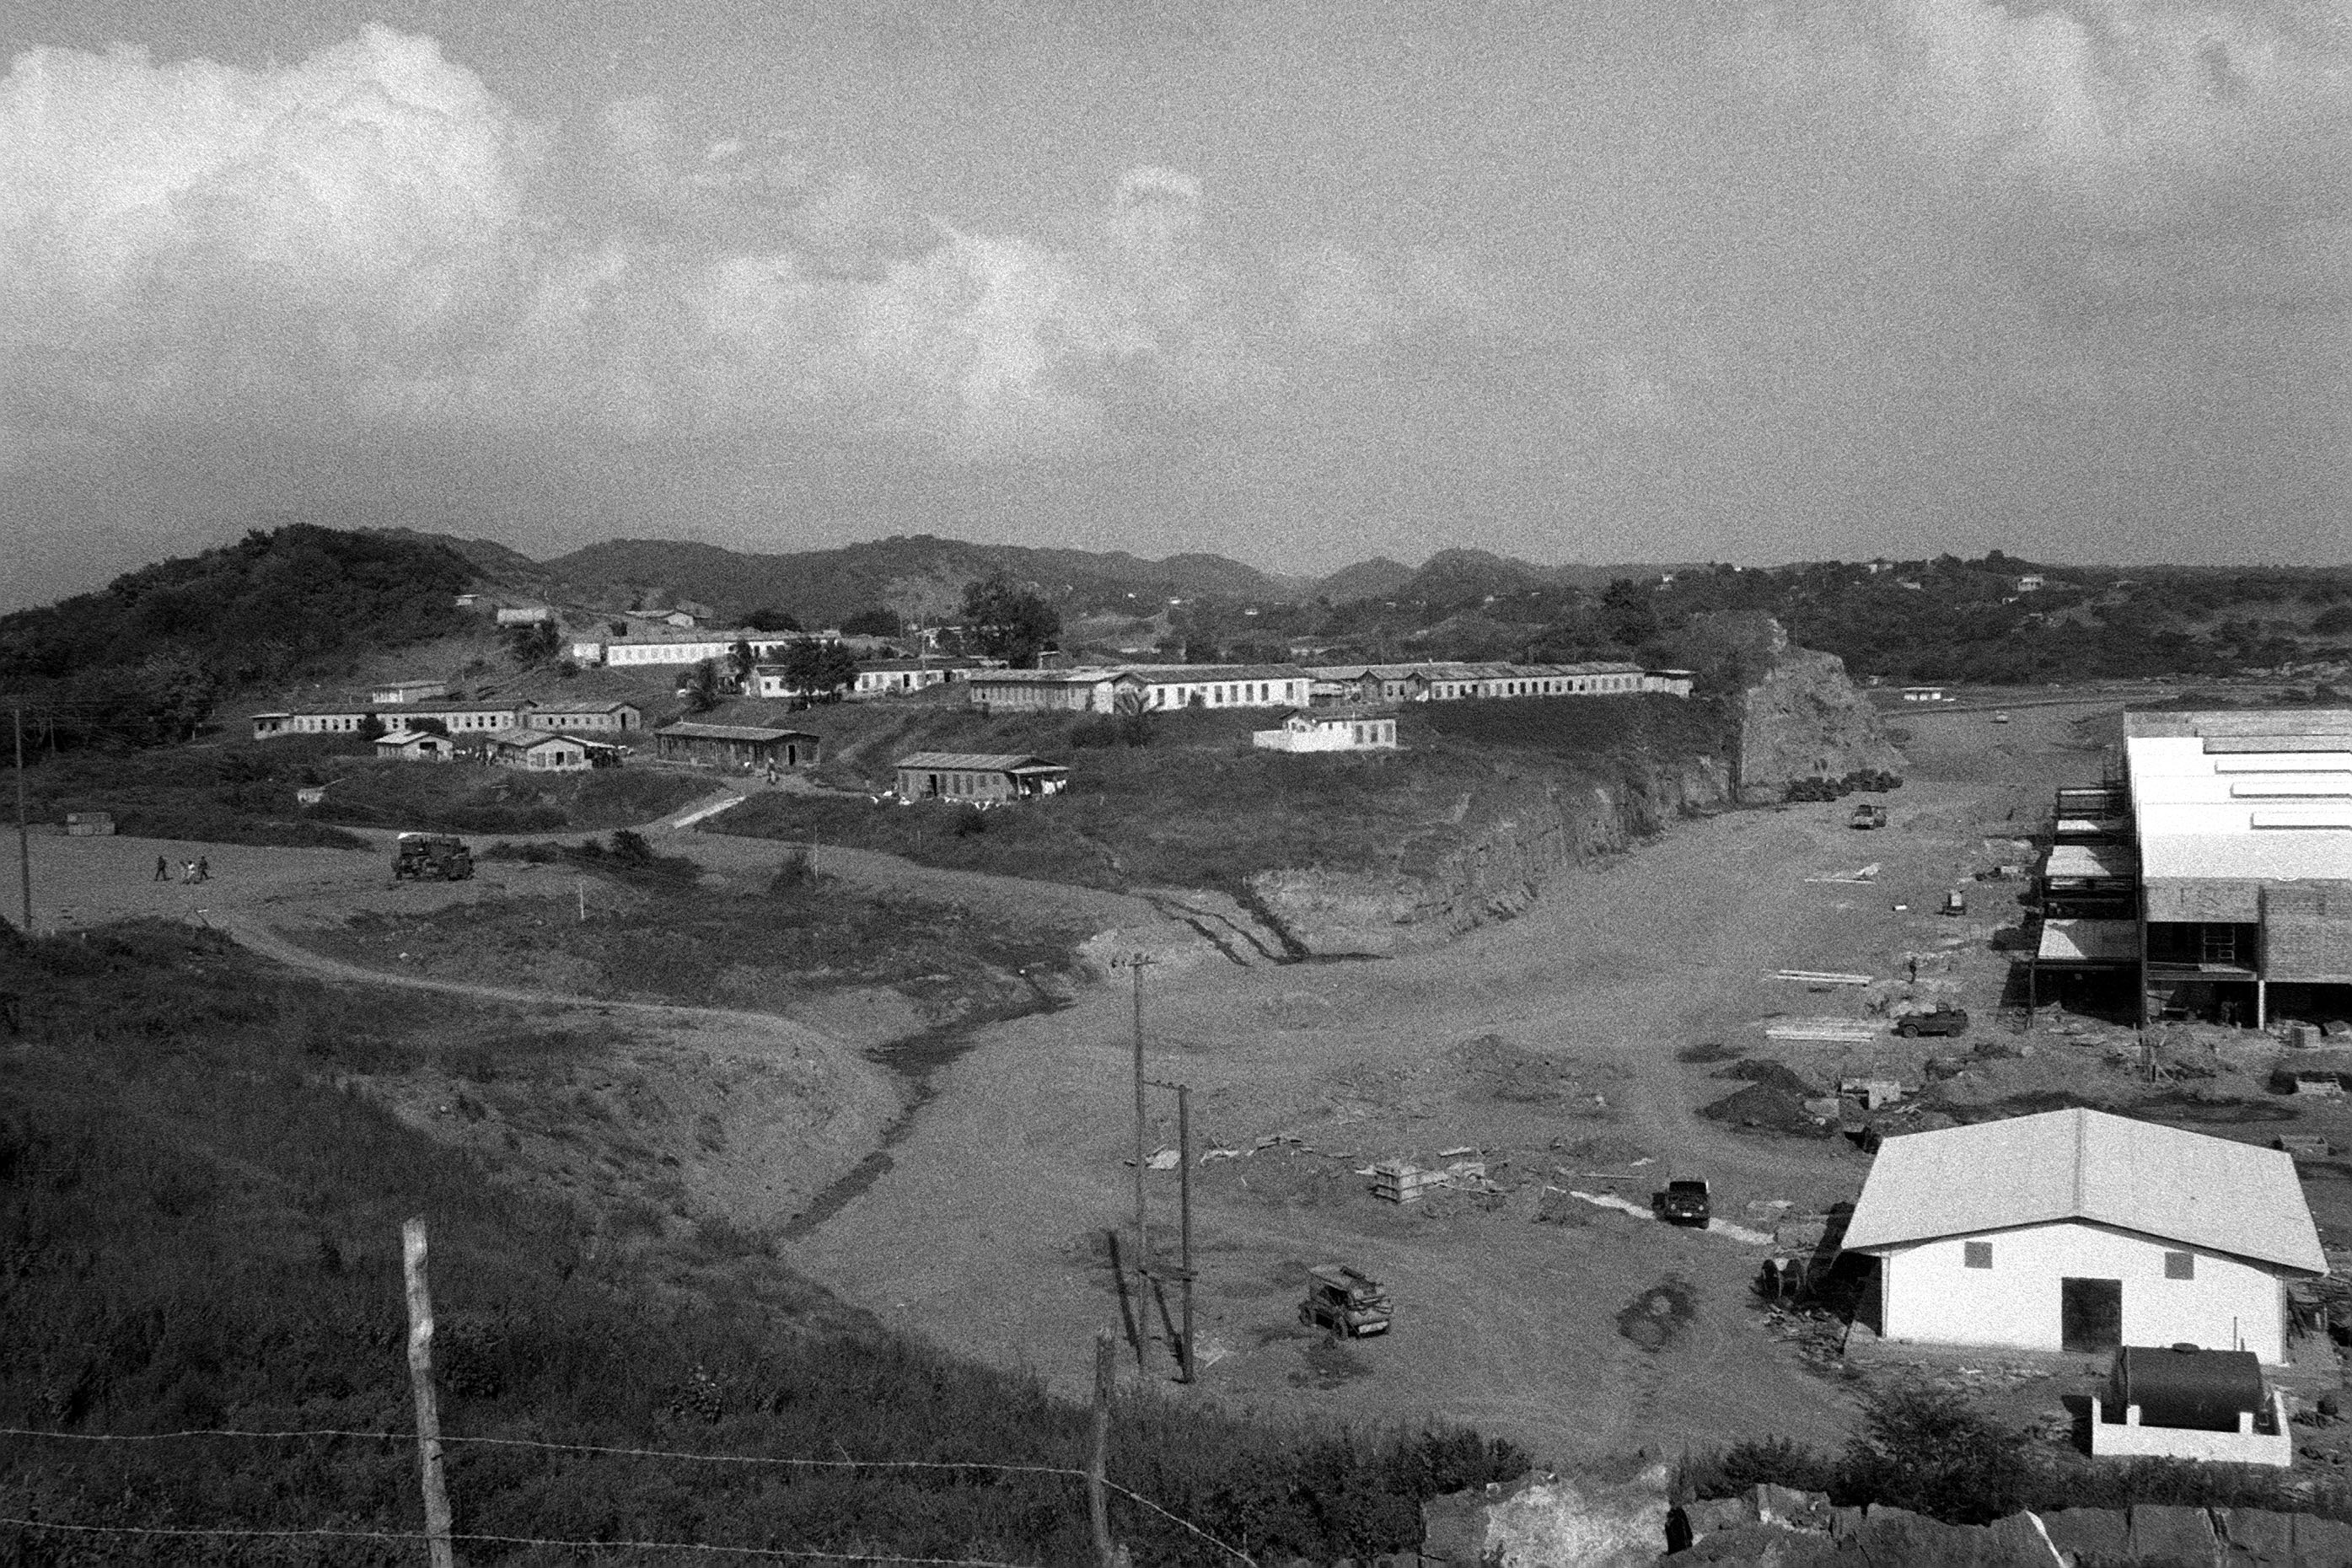 Buildings on a hill overlooking Point Salines Airfield during the multiservice, multinational Operation URGENT FURY